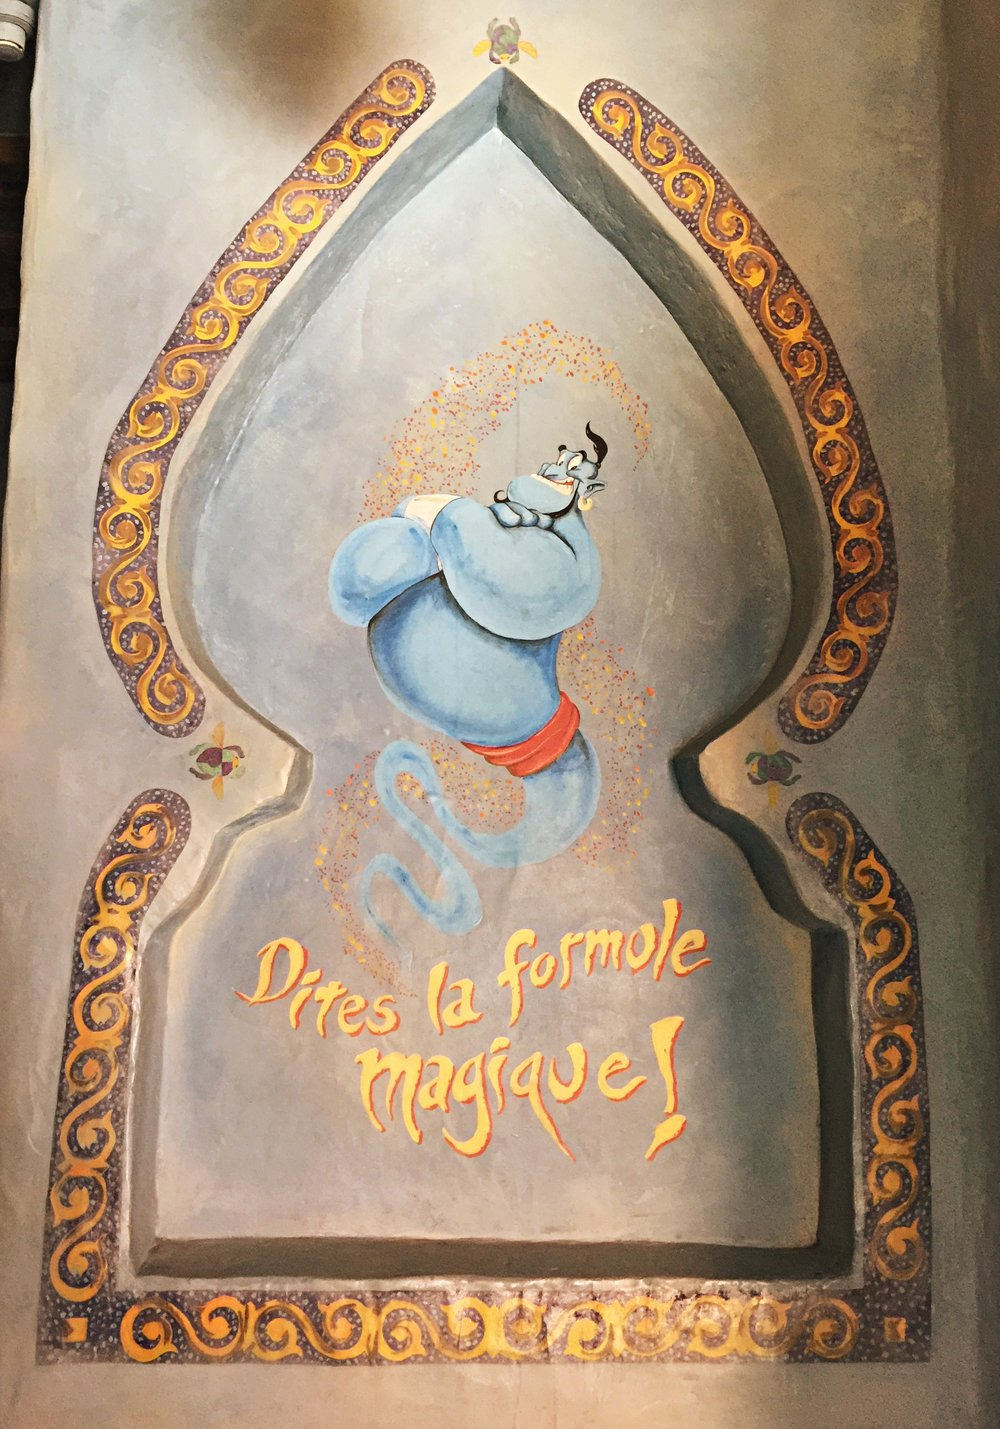 Aladdin's Enchanted Passage en Français!